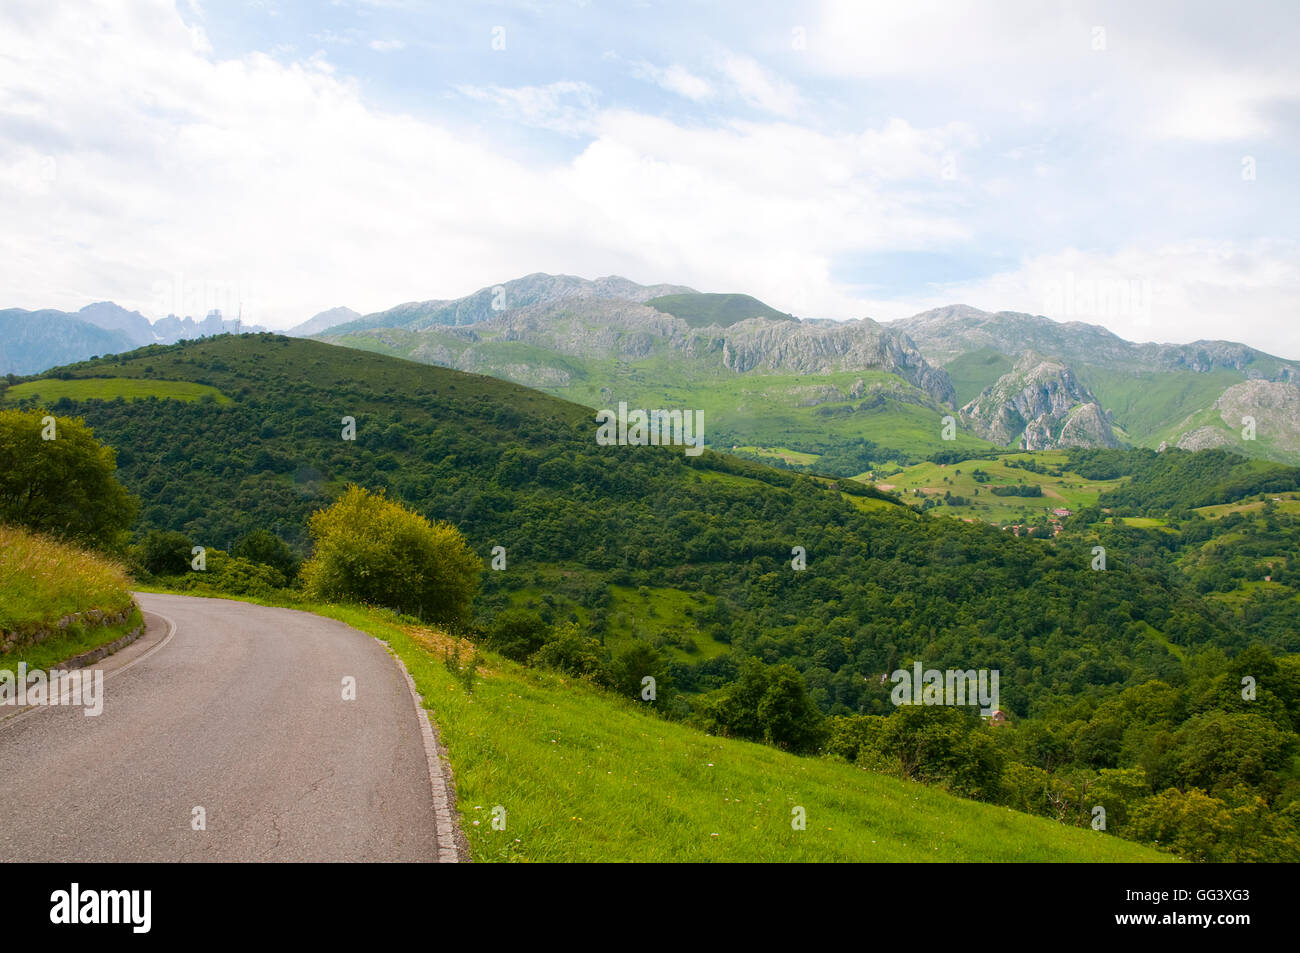 Side road and mountain landscape. Picos de Europa National park, Asturias, Spain. - Stock Image